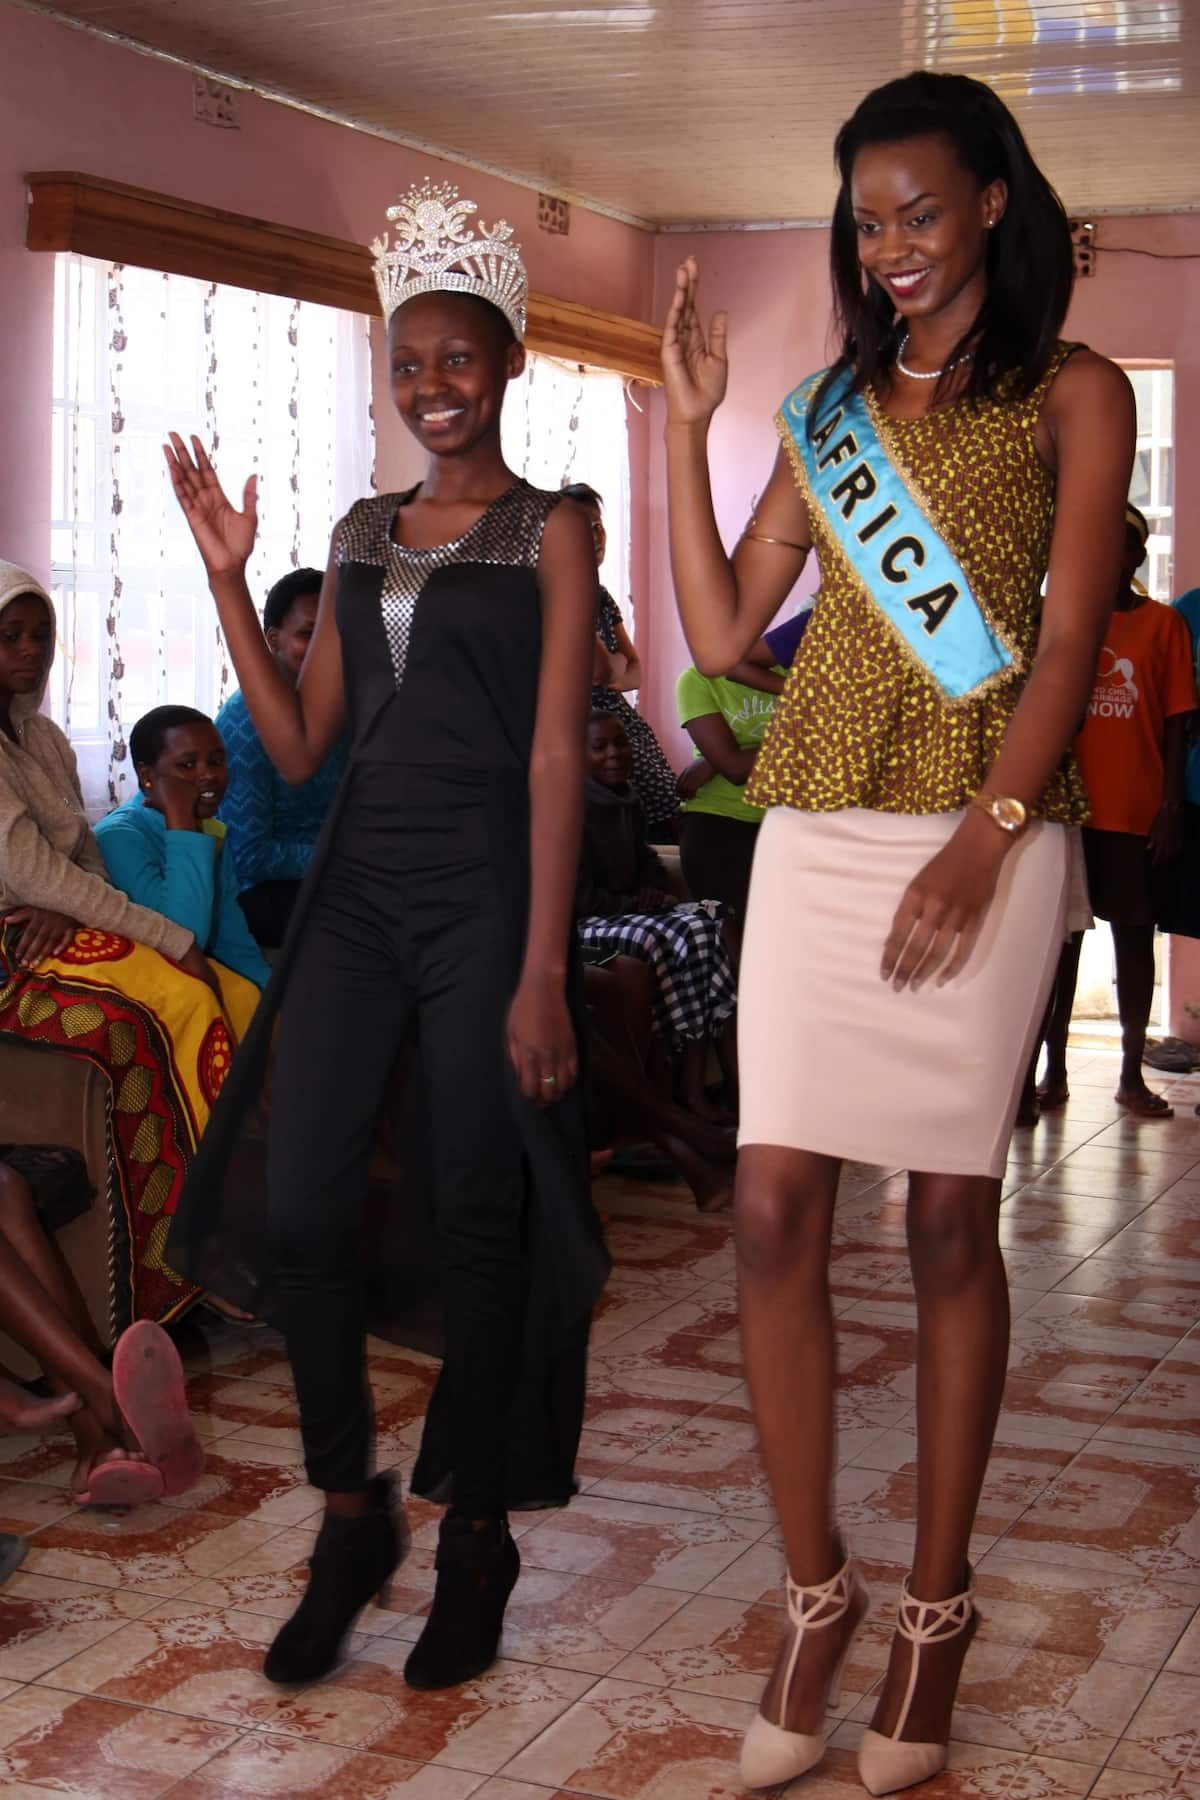 Miss World 2017 to grace gala celebrating champions against FGM